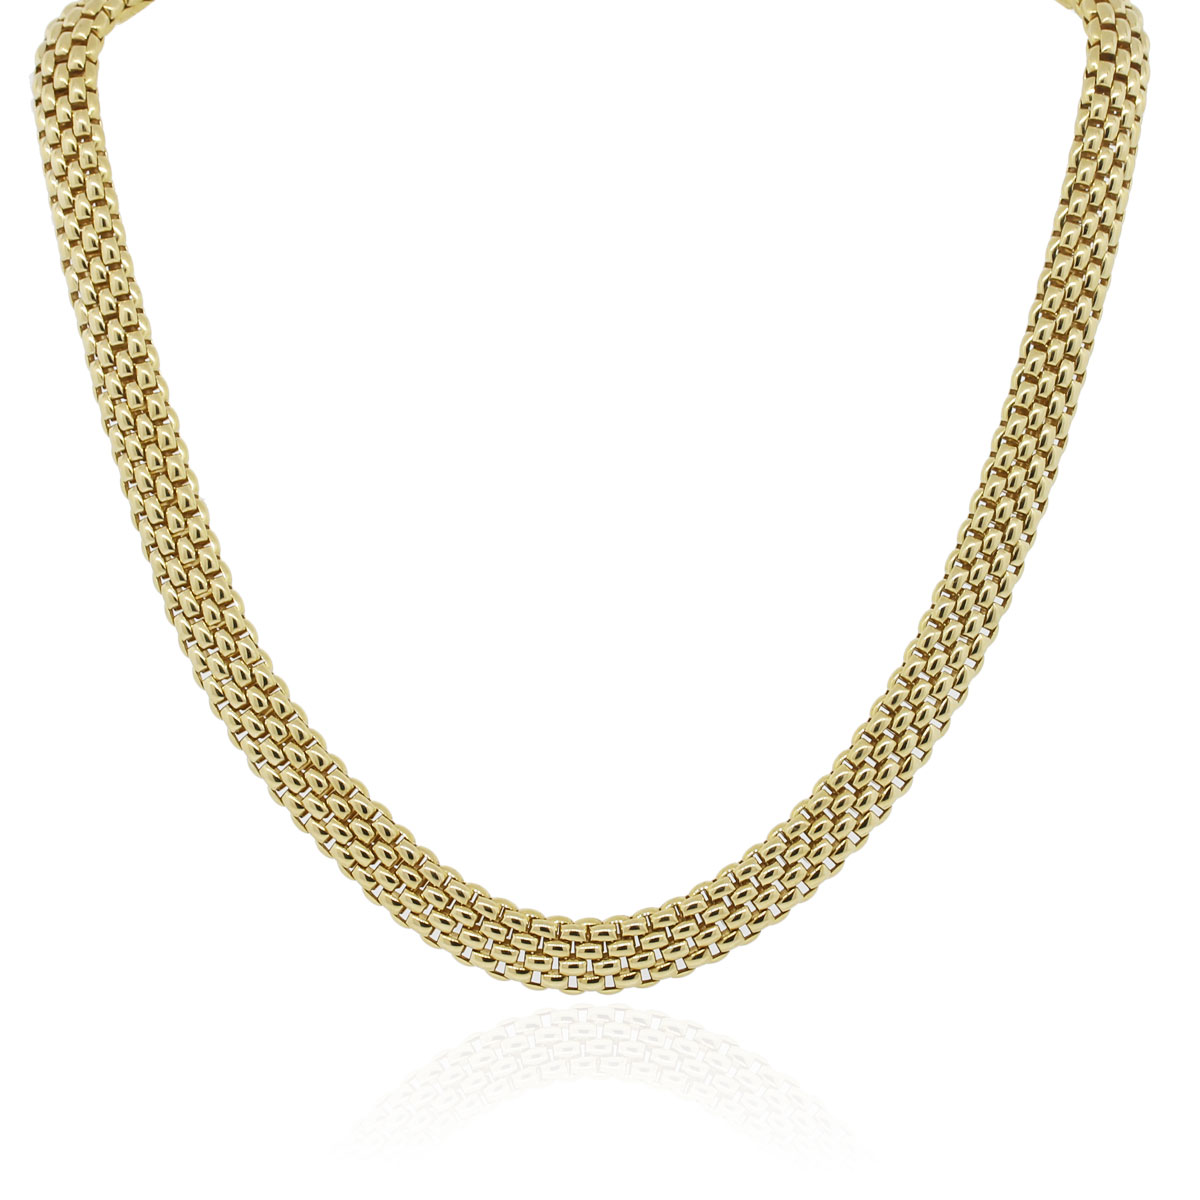 Fope 18k Yellow Gold Thick Woven Chain Necklace